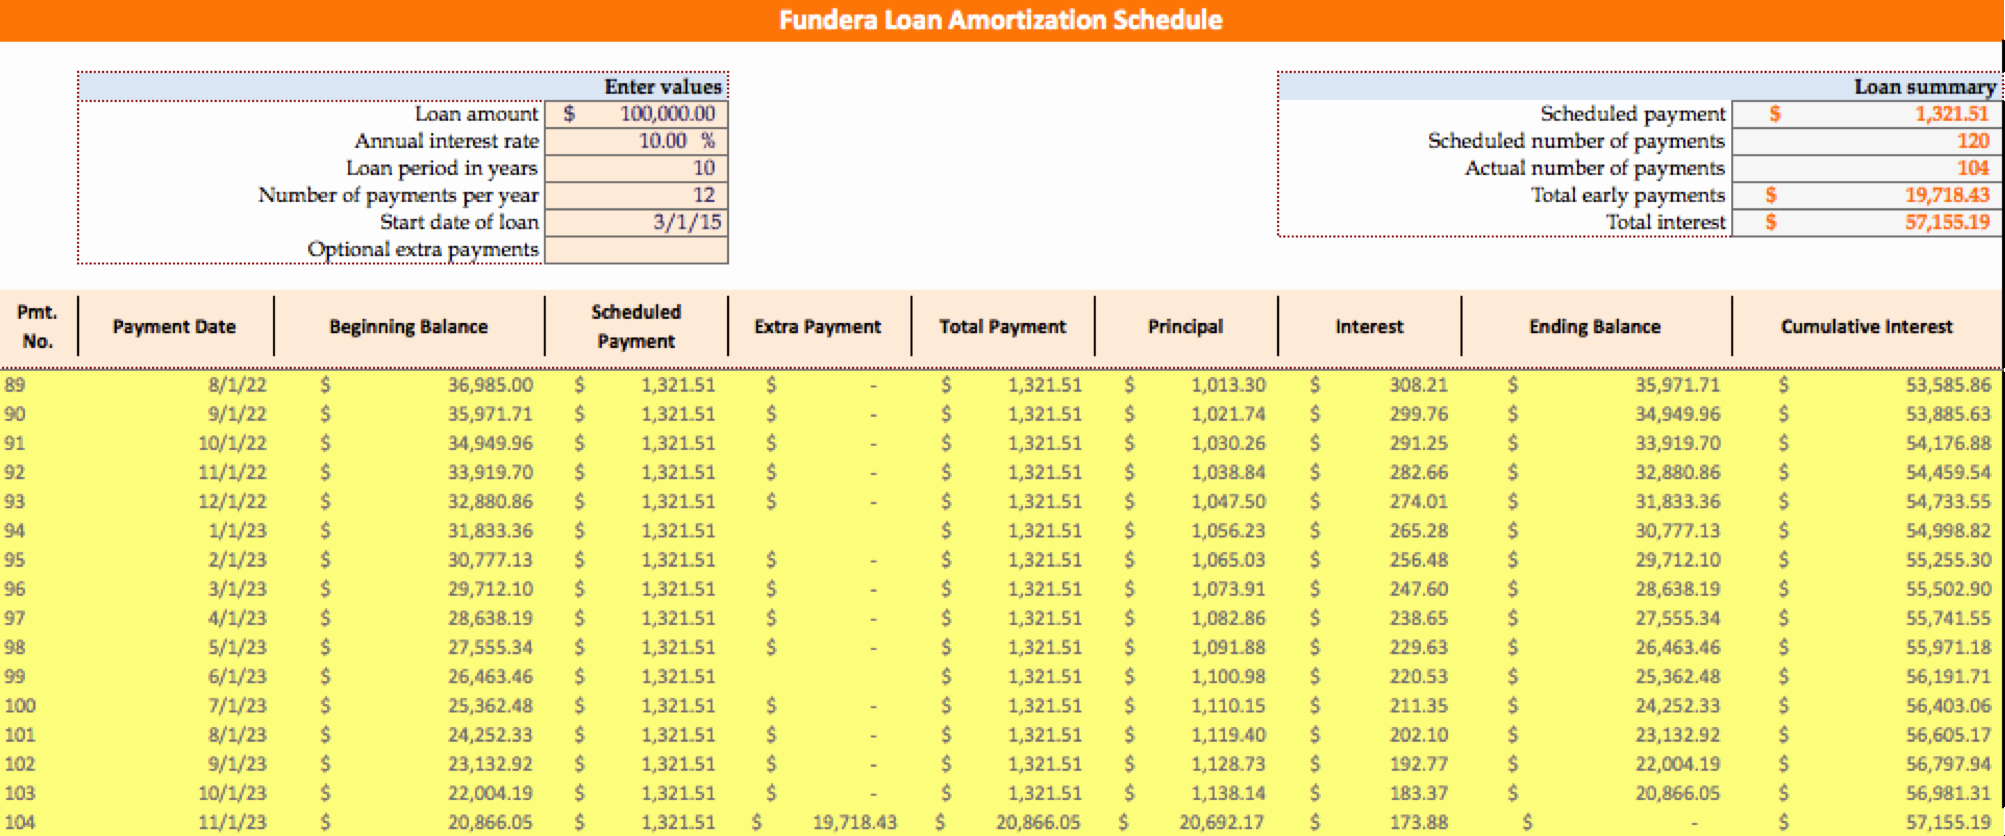 Loan Amortization with Extra Payment Inspirational Loan Amortization Schedule How to Calculate Payments